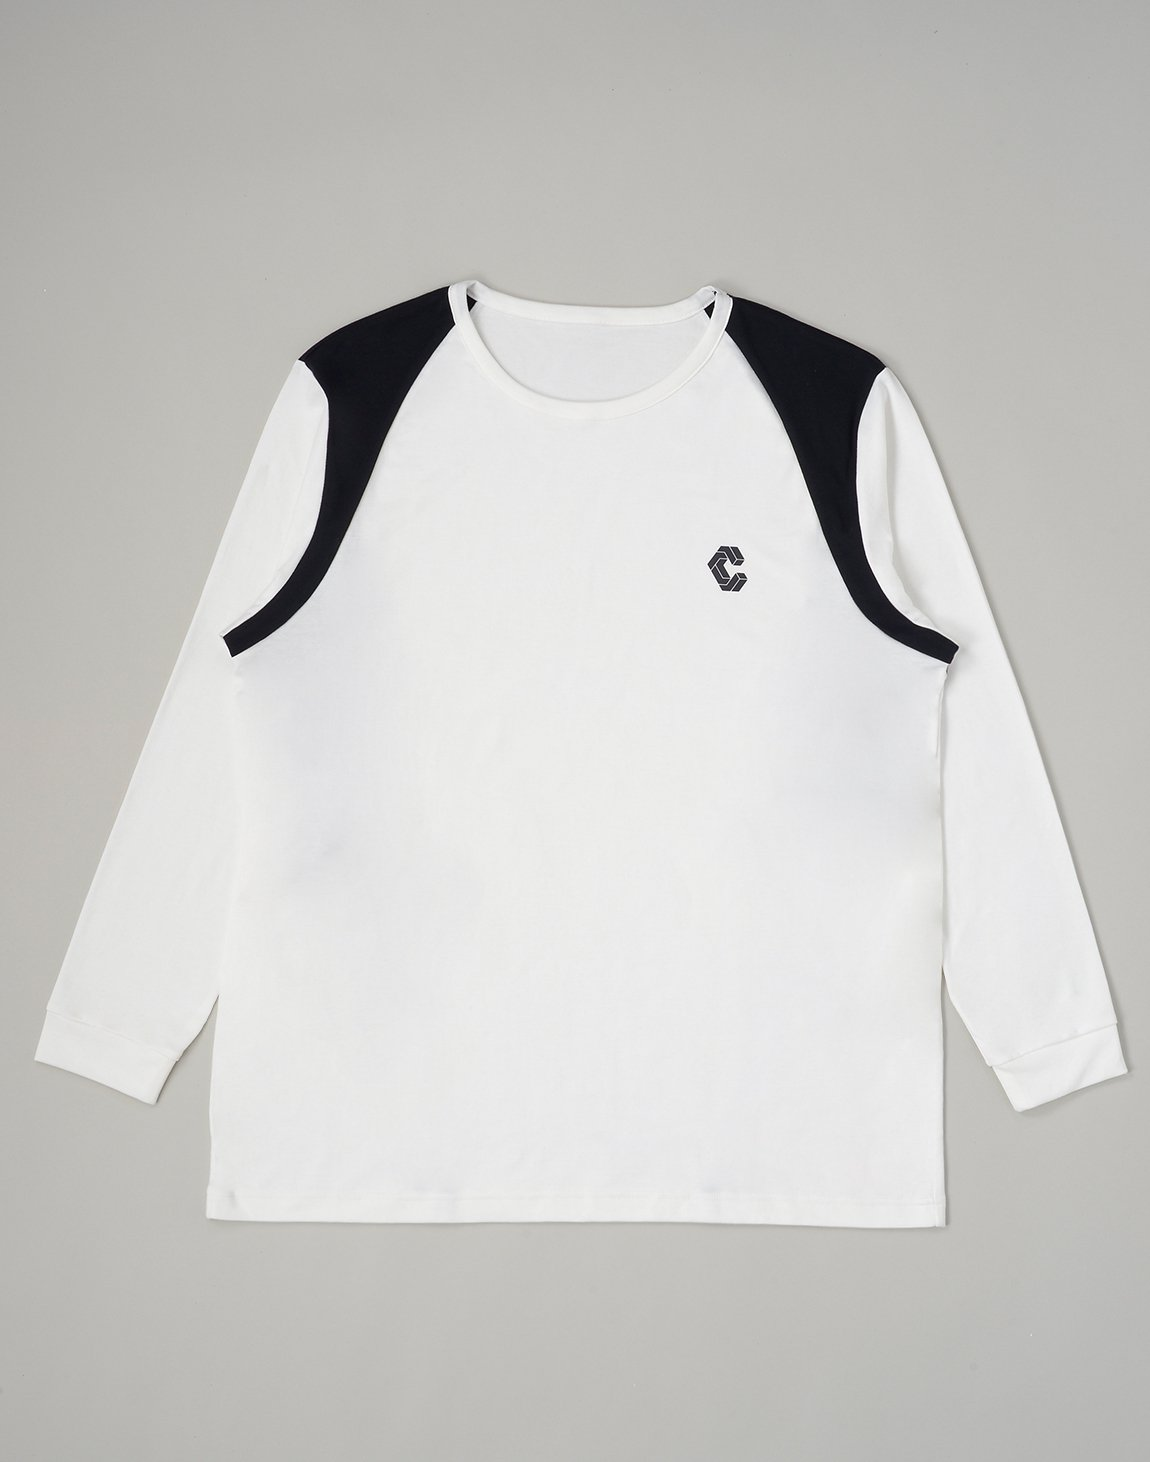 <img class='new_mark_img1' src='https://img.shop-pro.jp/img/new/icons55.gif' style='border:none;display:inline;margin:0px;padding:0px;width:auto;' />CRONOS LATS LINE LONG SLEEVE【WHITE】